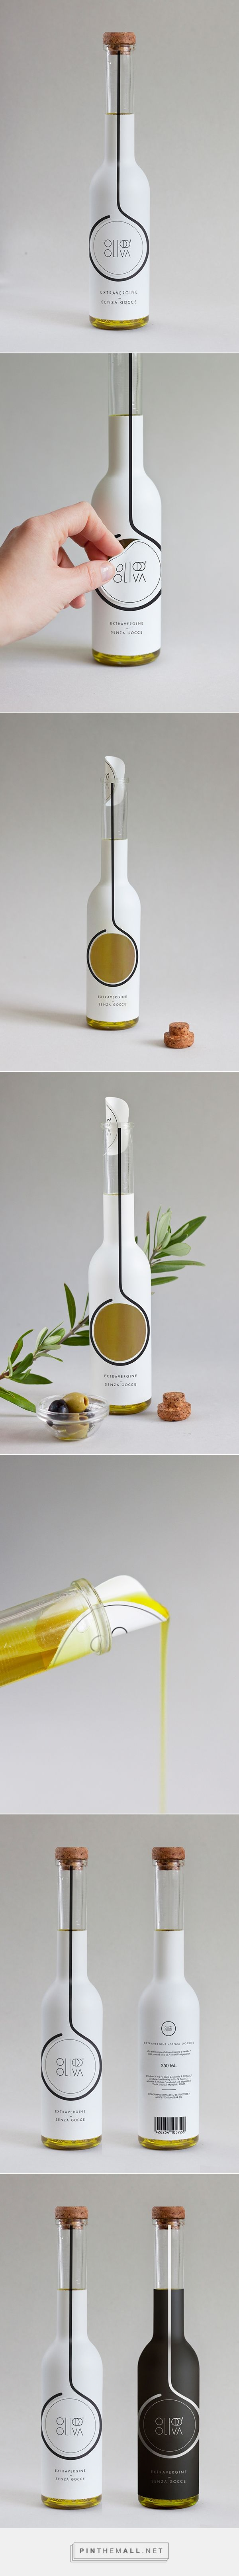 Encantador diseño de packaging, para el aceite de oliva ...  Pinners Thoughts: this is so clever!!!